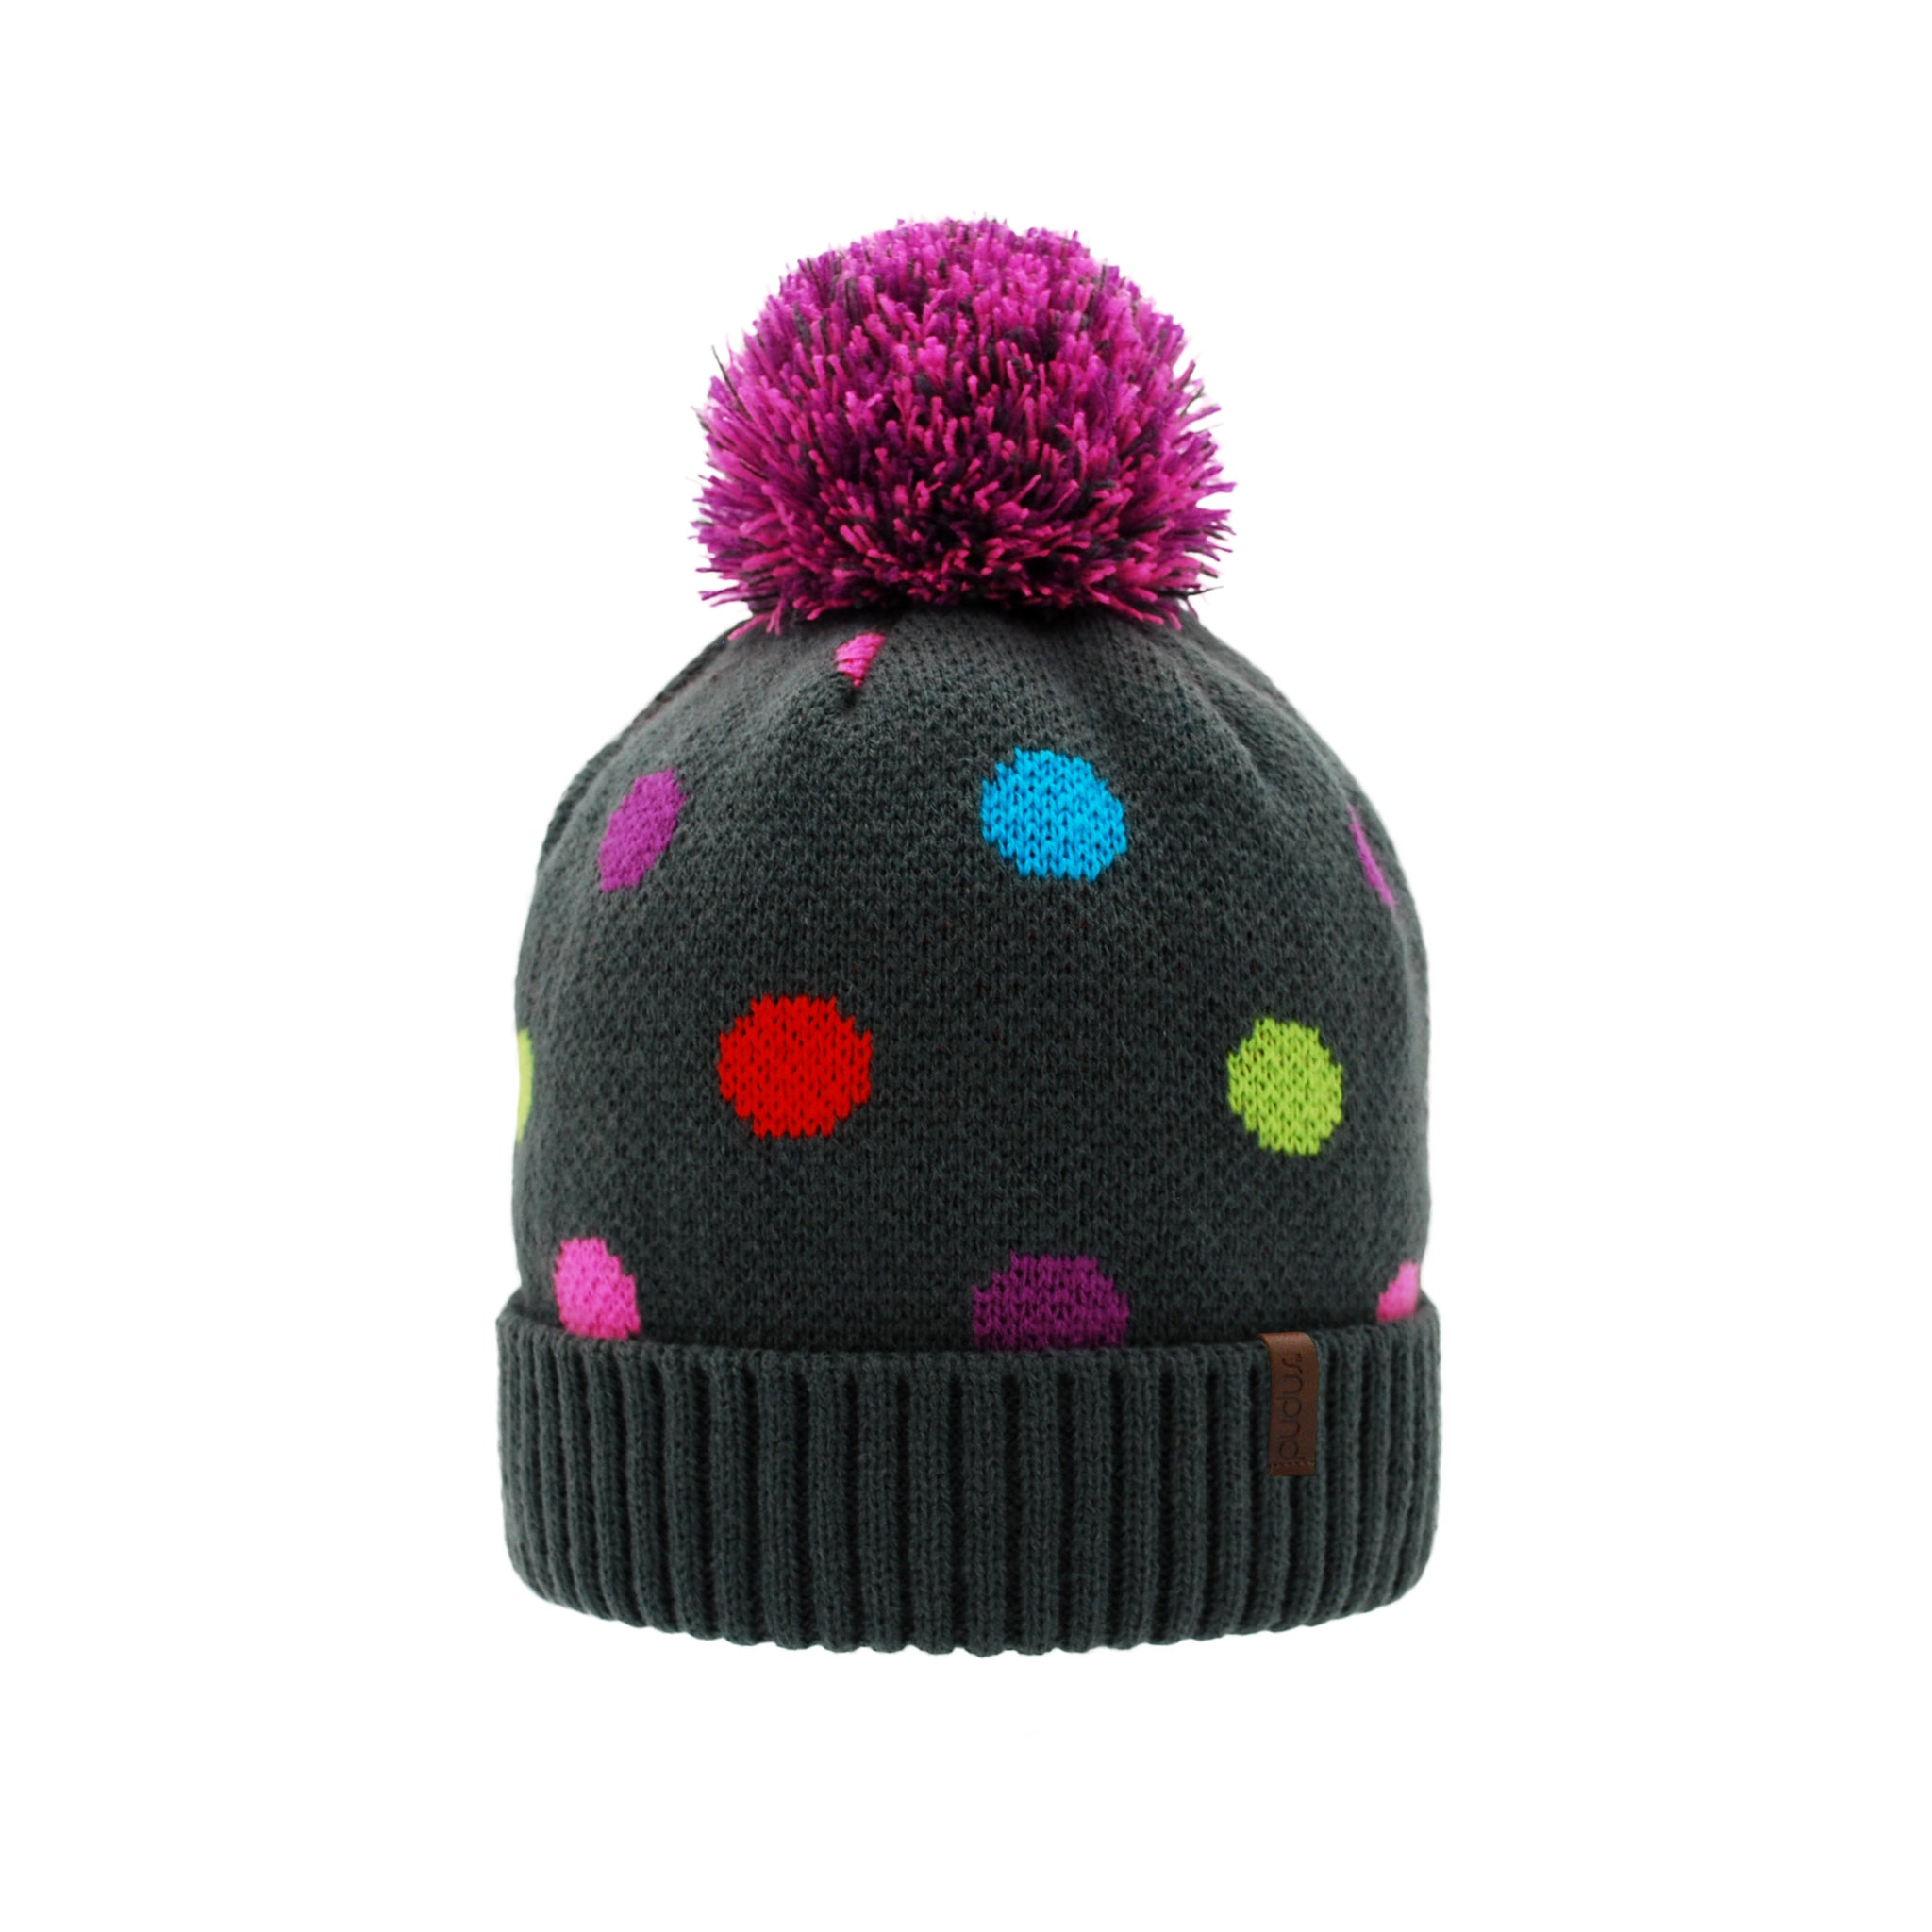 Toque Winter Hat | Polka Dot Multi